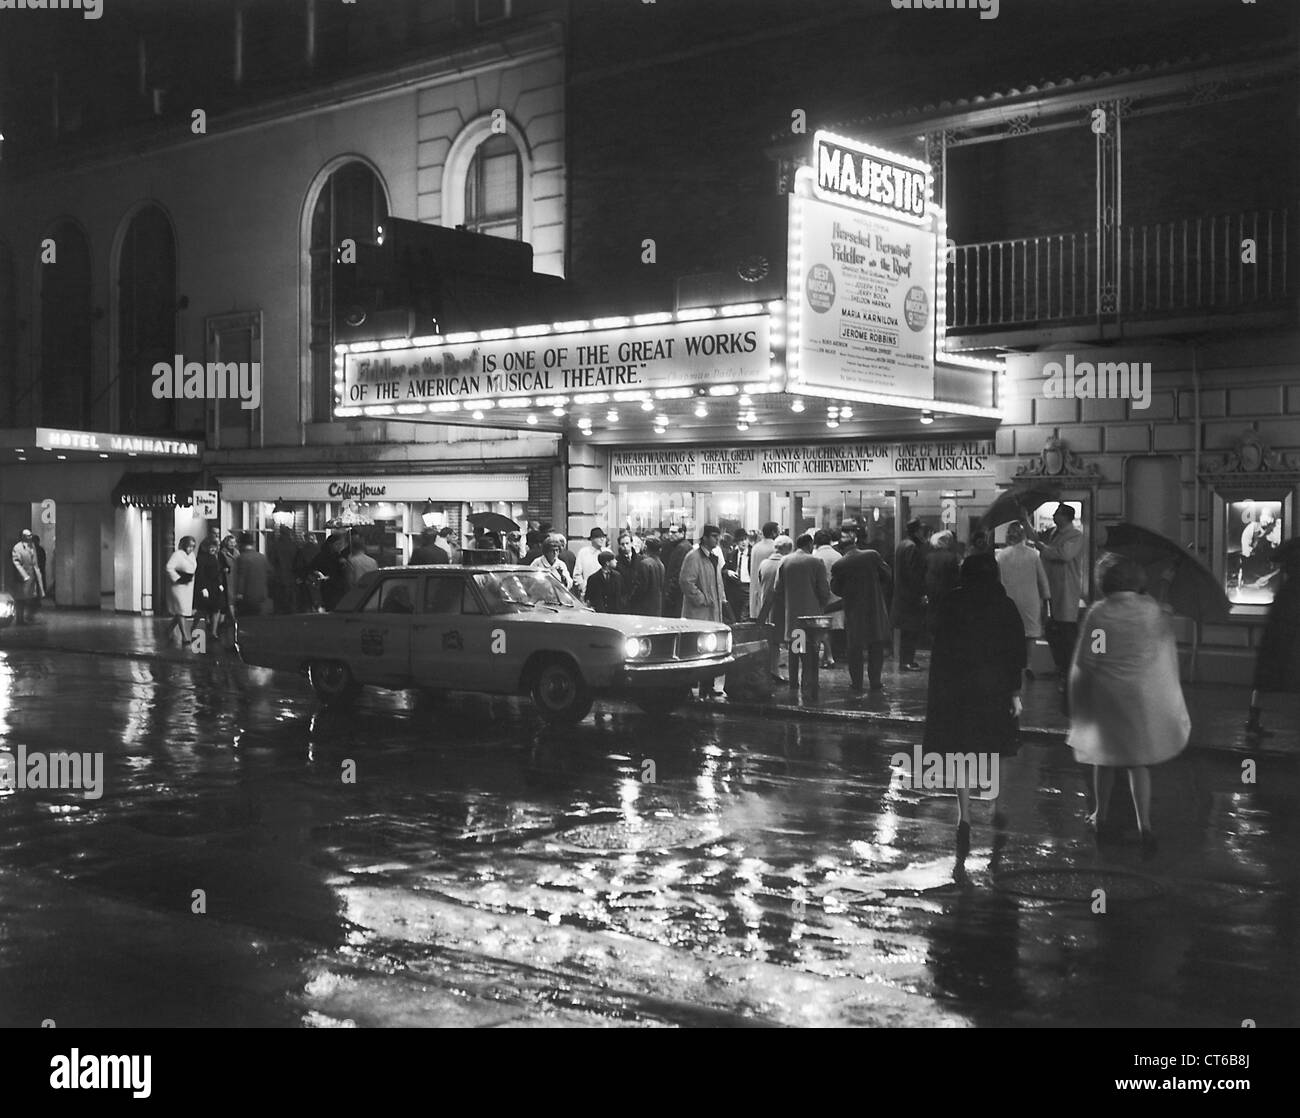 People going into the Majestic Theater, New York City - Stock Image